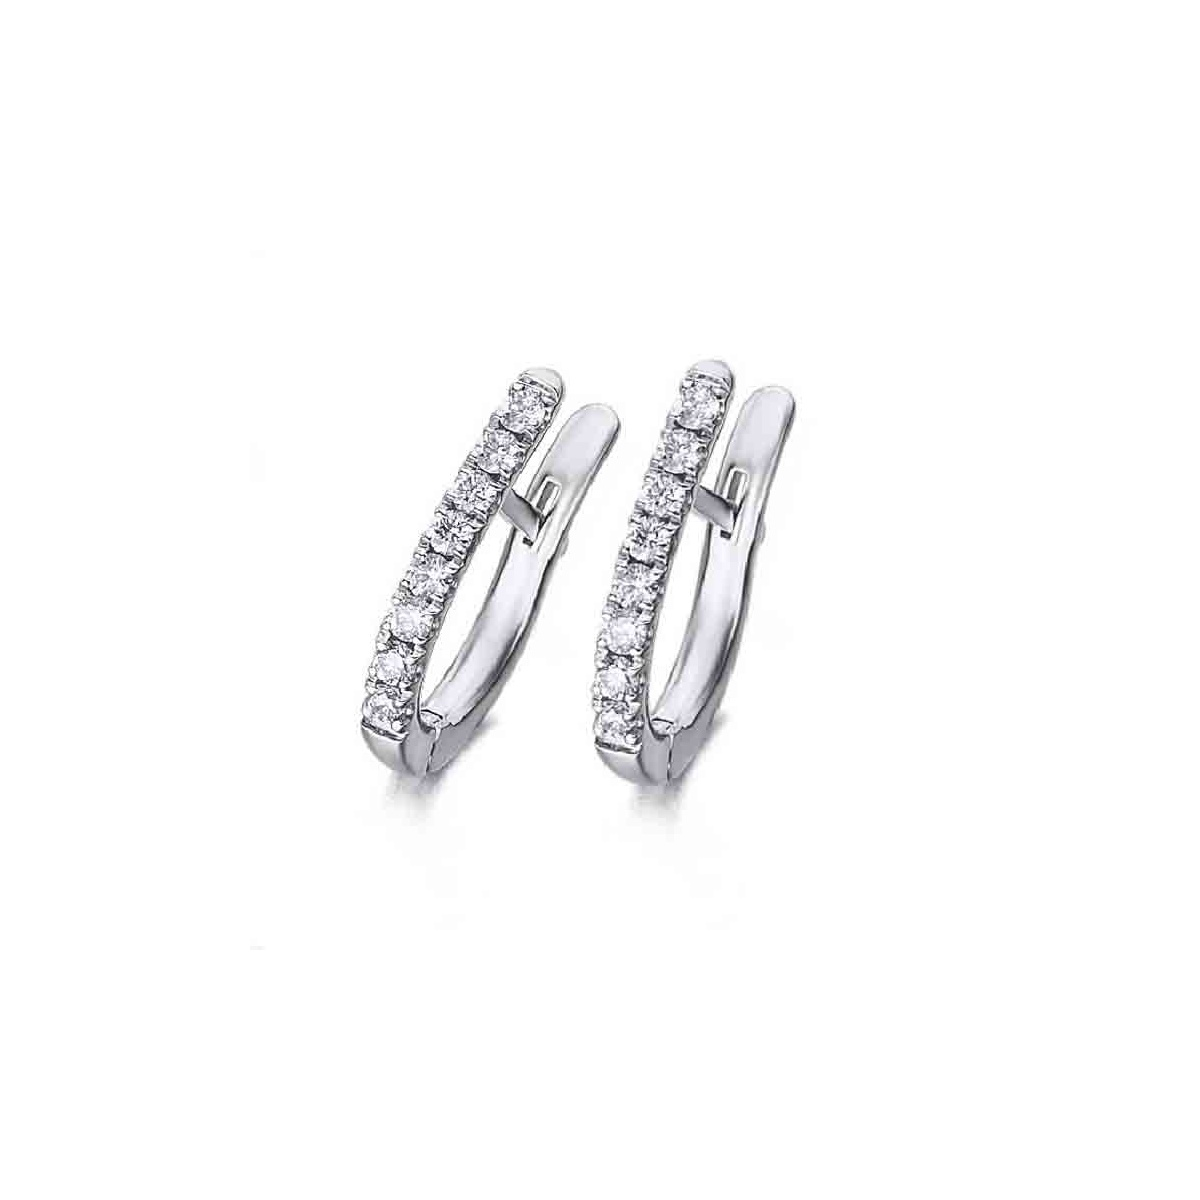 Pendientes Arete oro blanco y Diamantes - 0,22 quilates